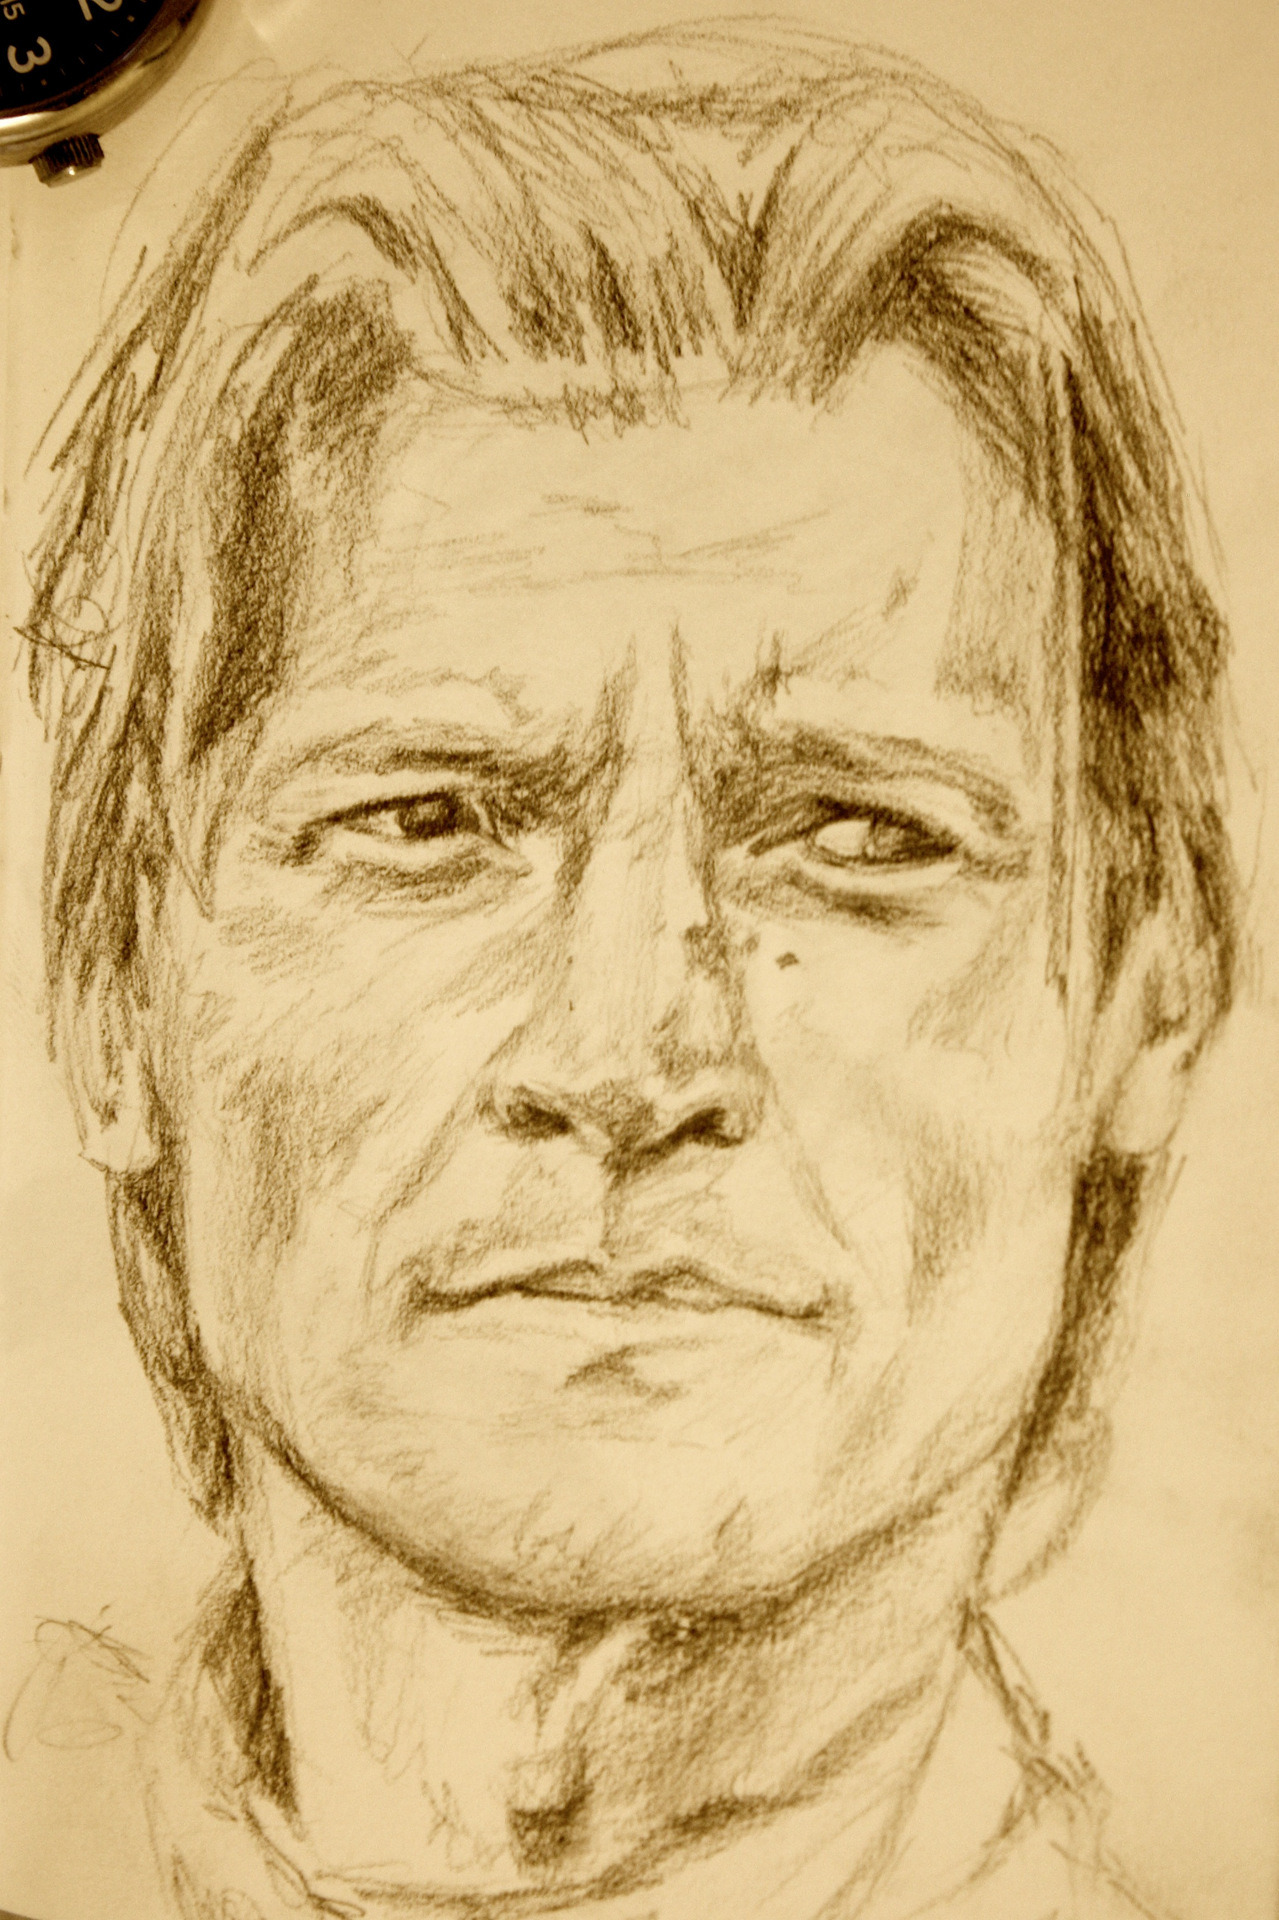 Jaime Lannister, Kingslayer, as portrayed by Nikolaj Coster-Waldau.